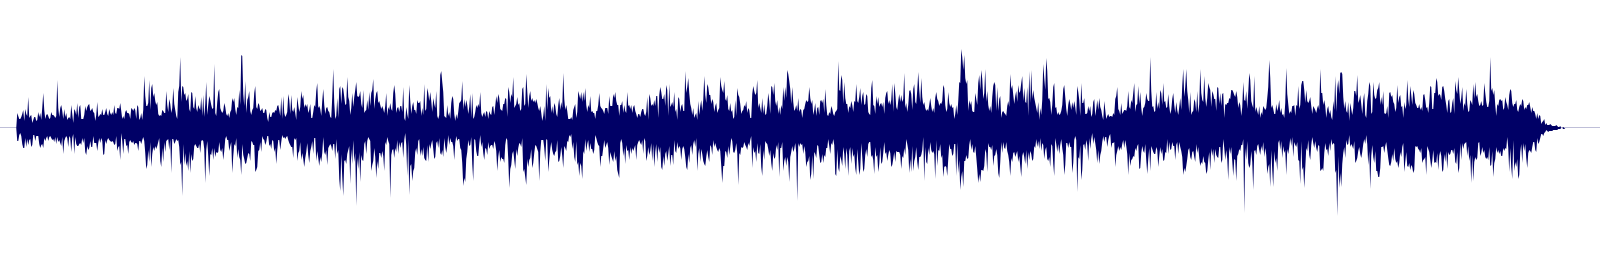 waveform of track #101304